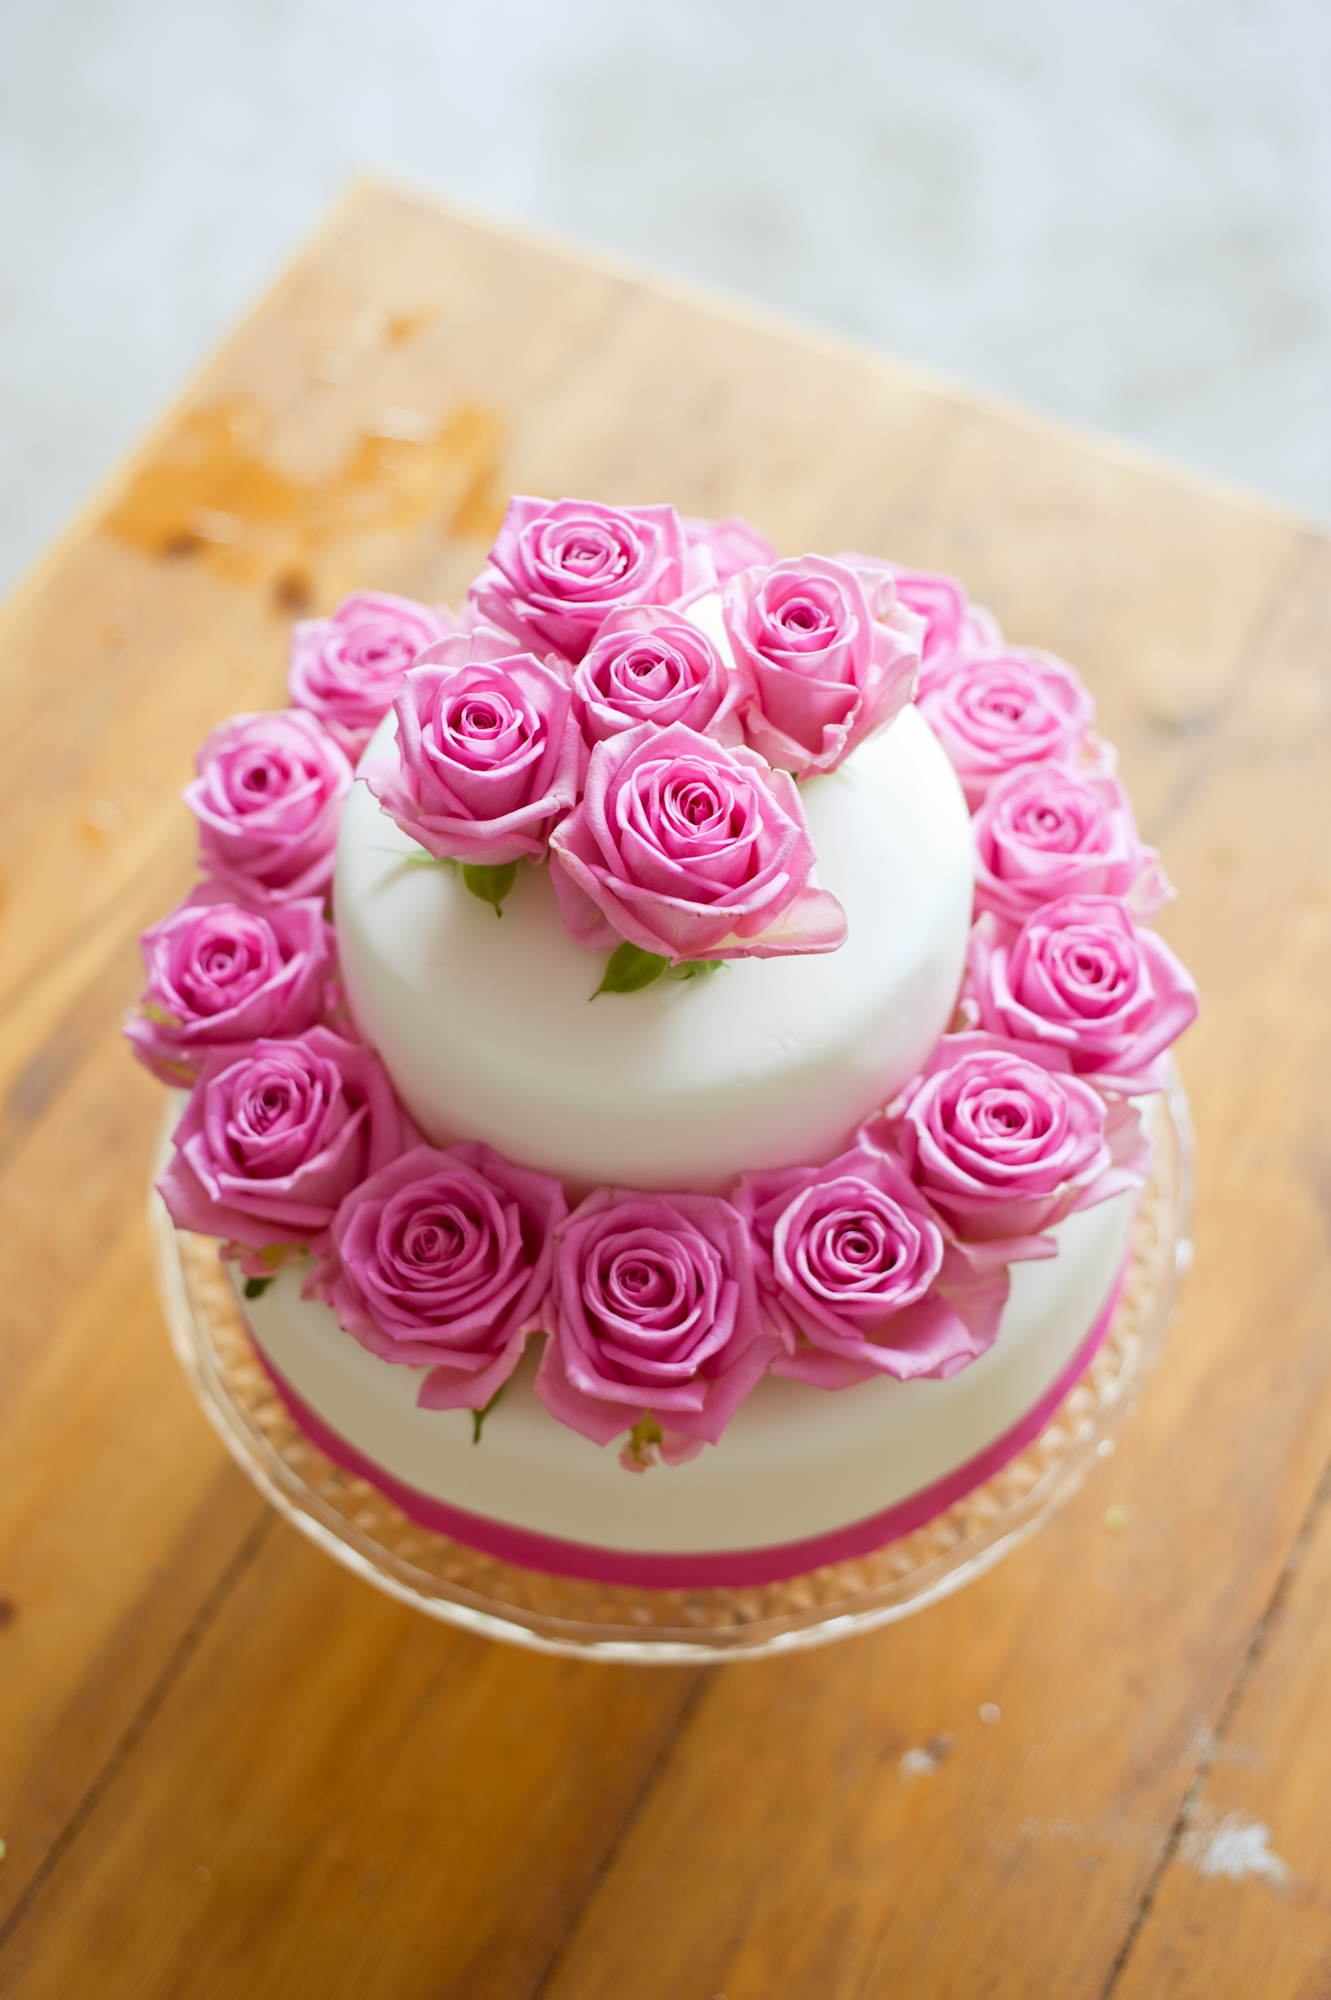 Cake Design Ideas With Flowers : Flower Cakes   Decoration Ideas Little Birthday Cakes